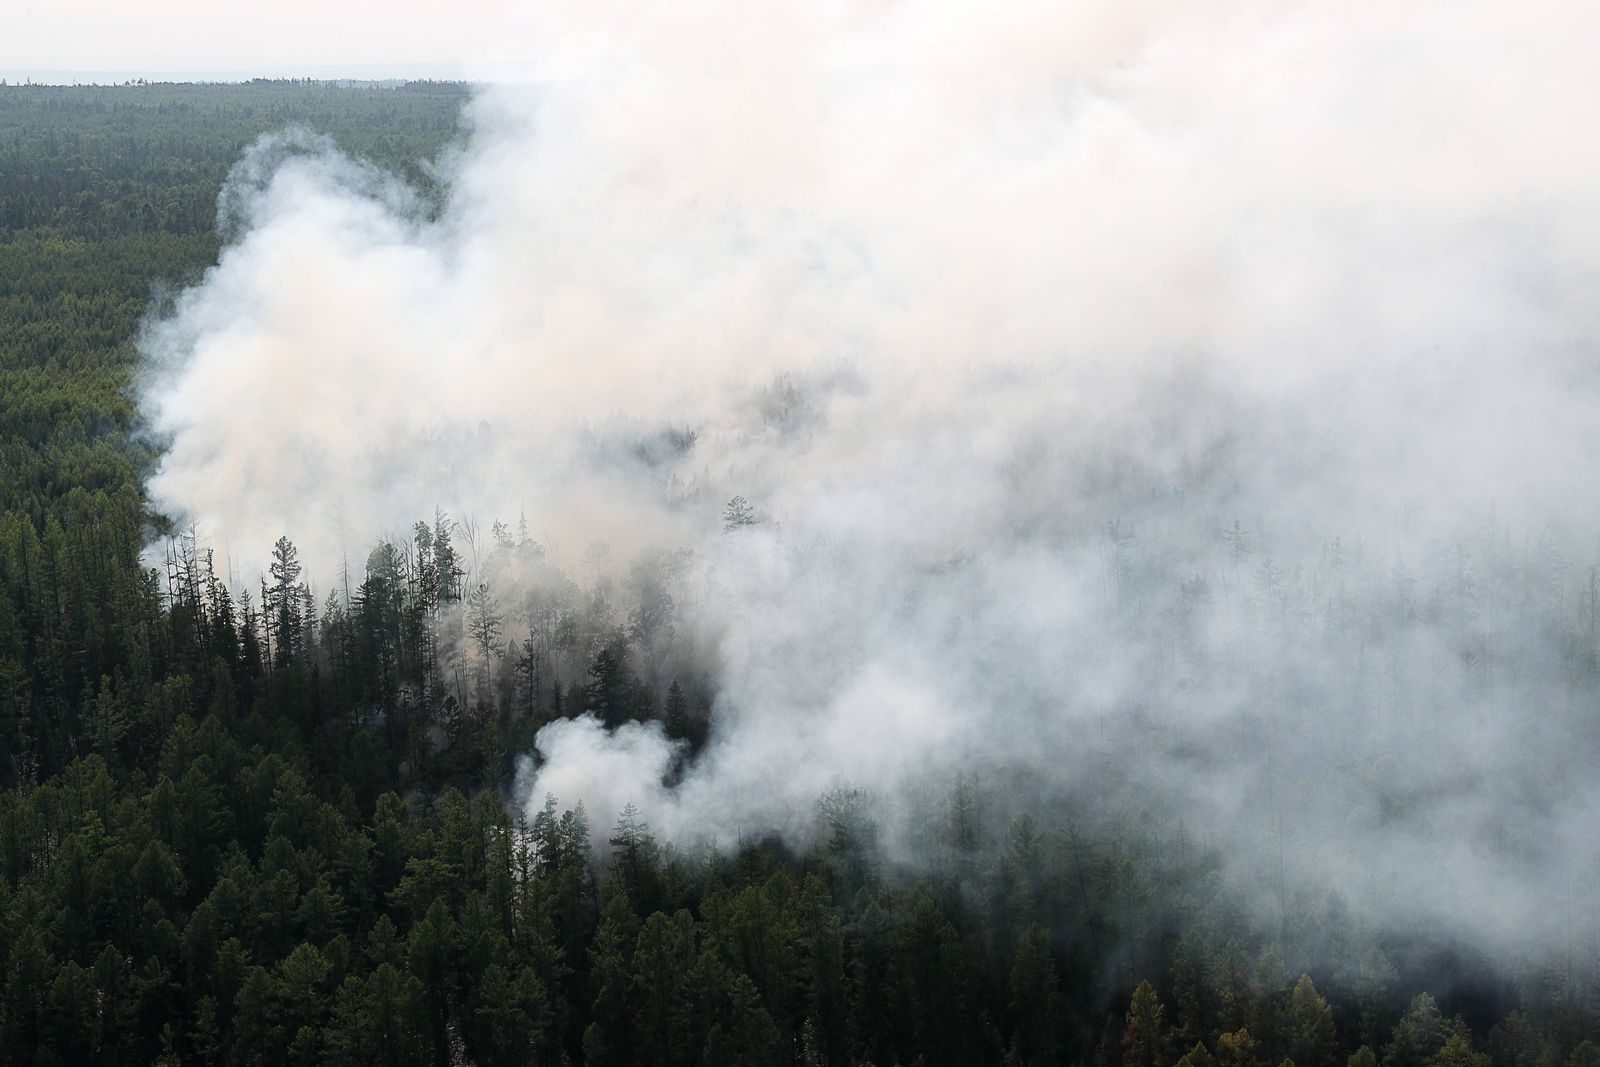 KRASNOYARSK TERRITORY RUSSIA AUGUST 4 2019 A view of a forest fire in Boguchany District over